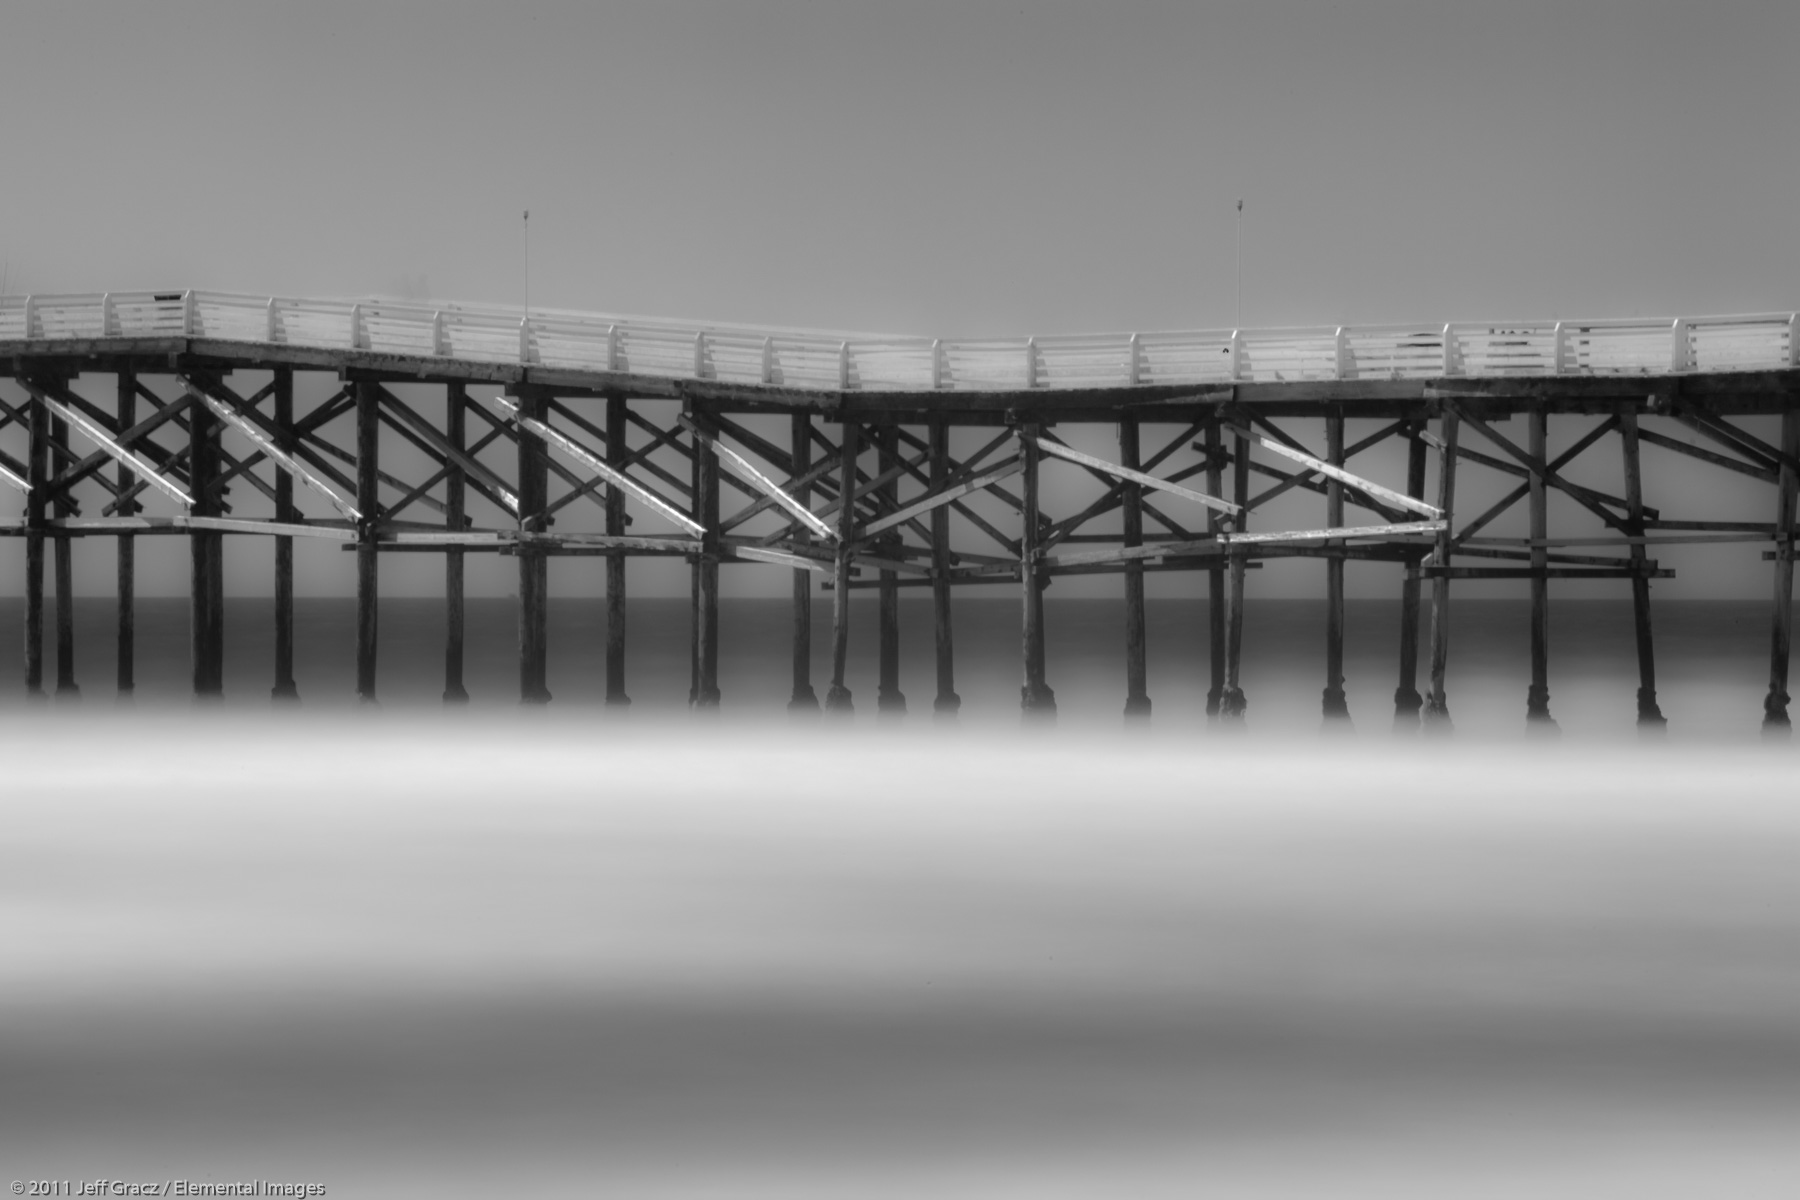 Pier and Surf | San Diego | CA | USA - © © 2011 Jeff Gracz / Elemental Images - All Rights Reserved Worldwide